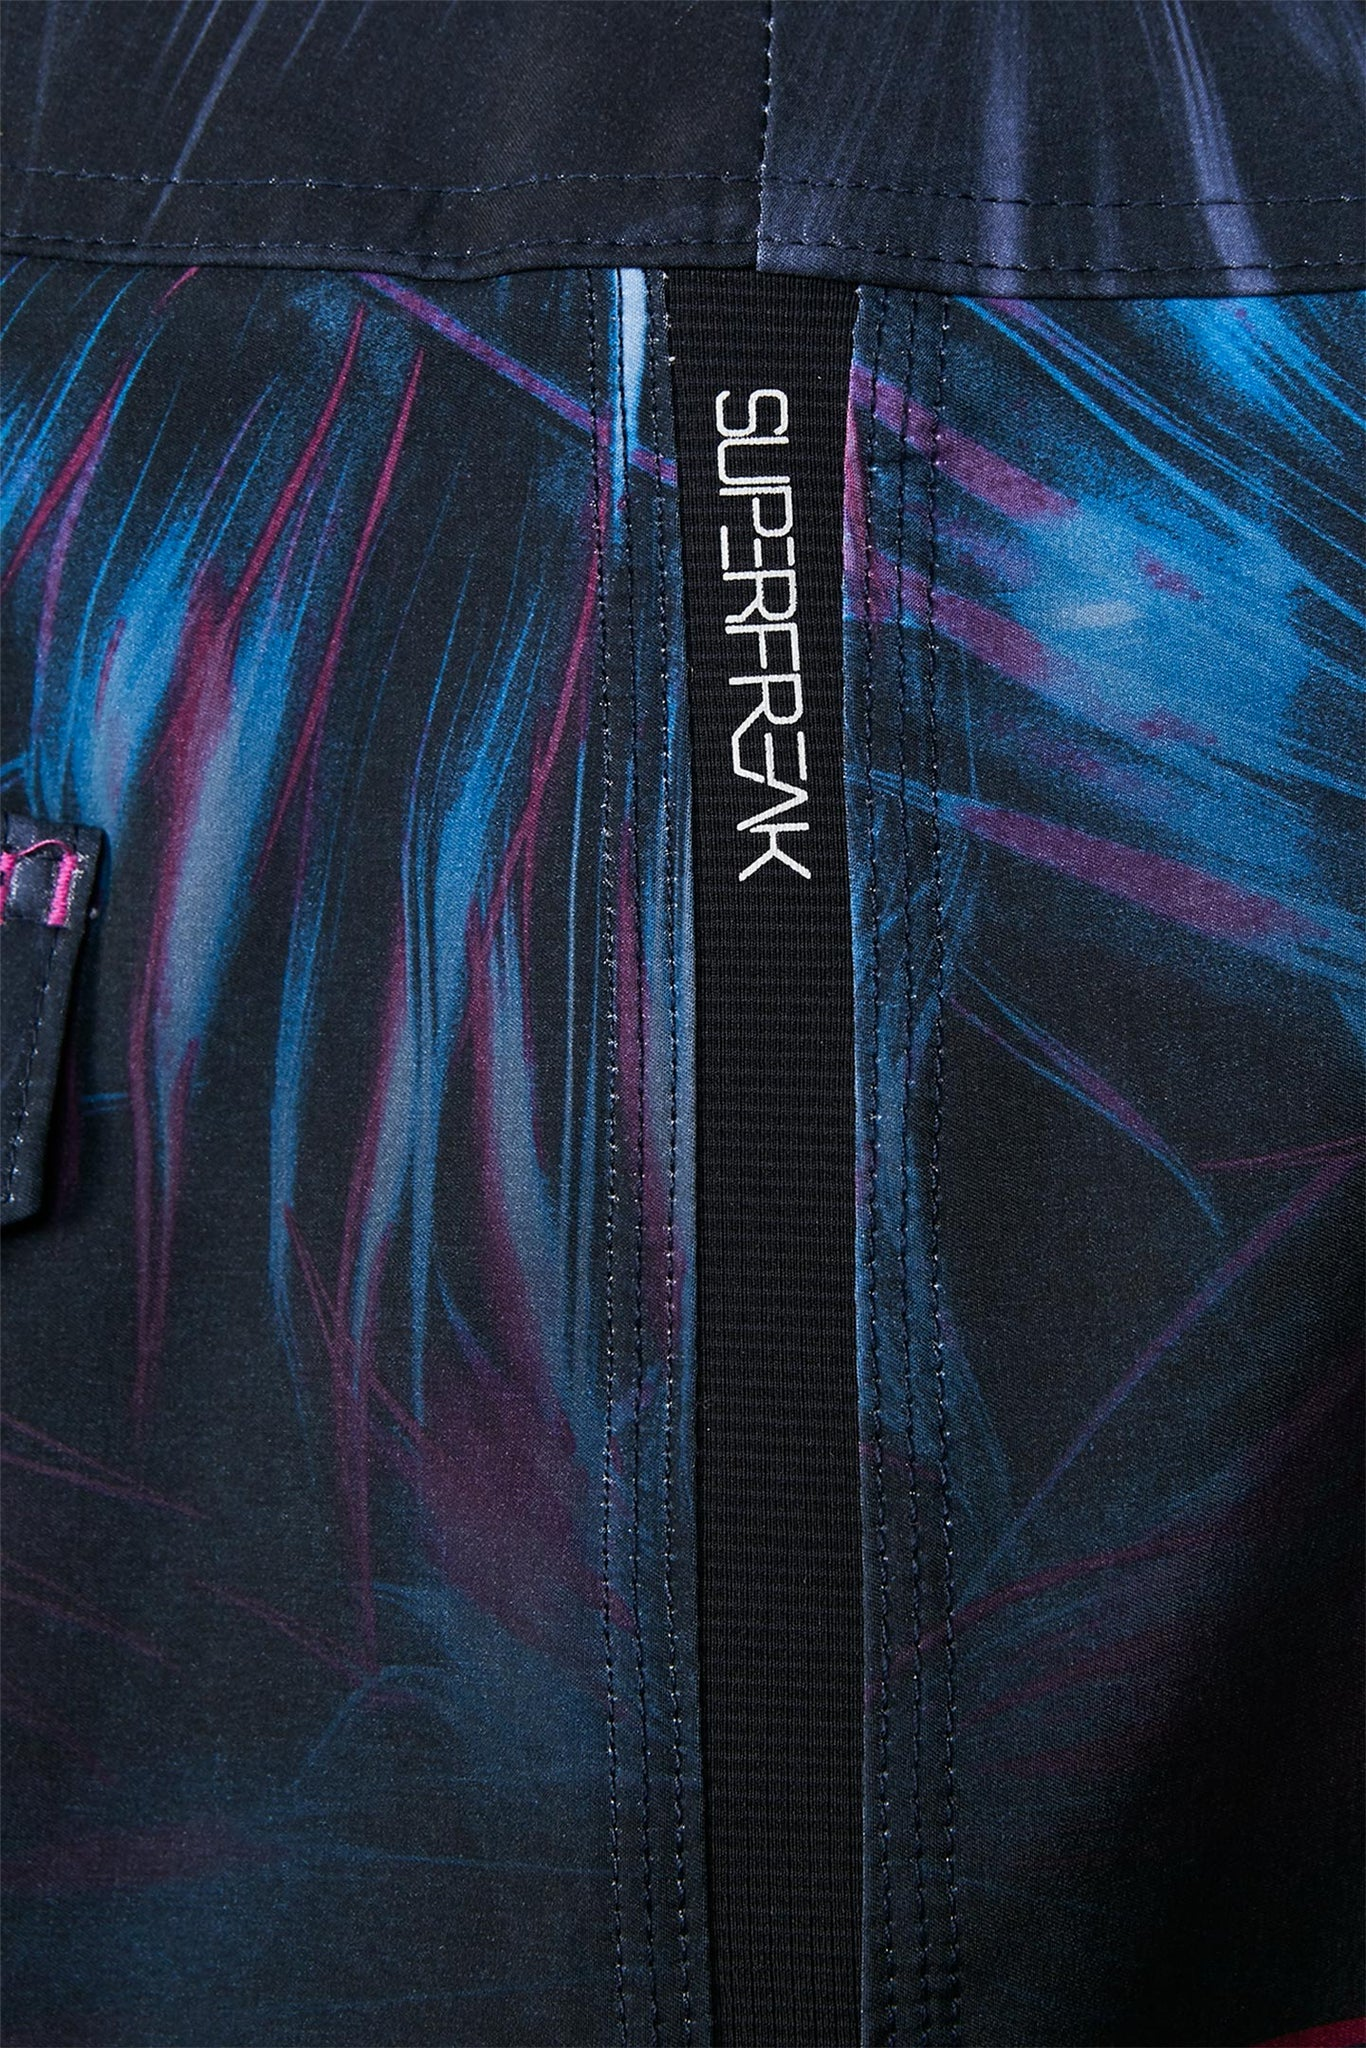 Superfreak Hallucination Boardshorts | O'Neill Clothing USA